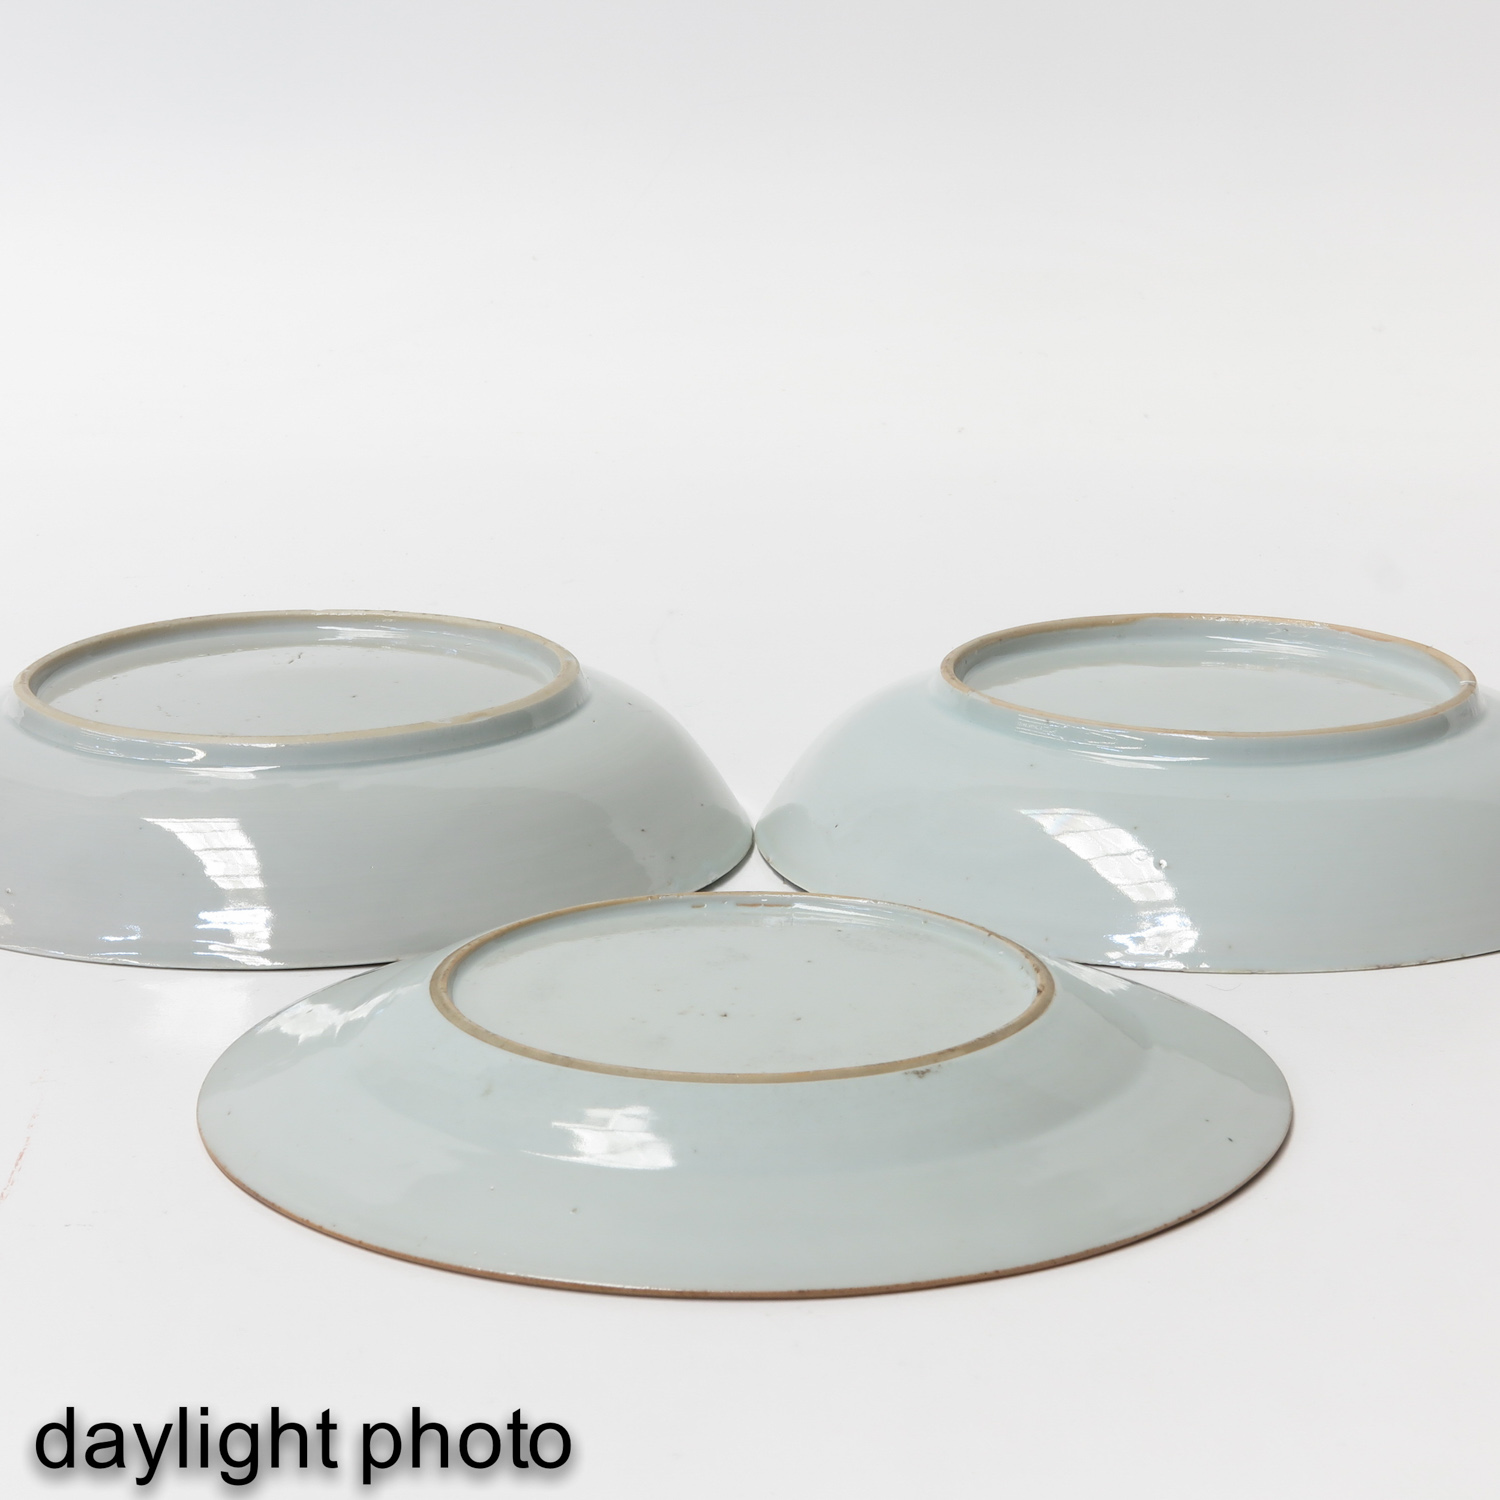 A Collection of 3 Famille Rose Plates - Image 10 of 10